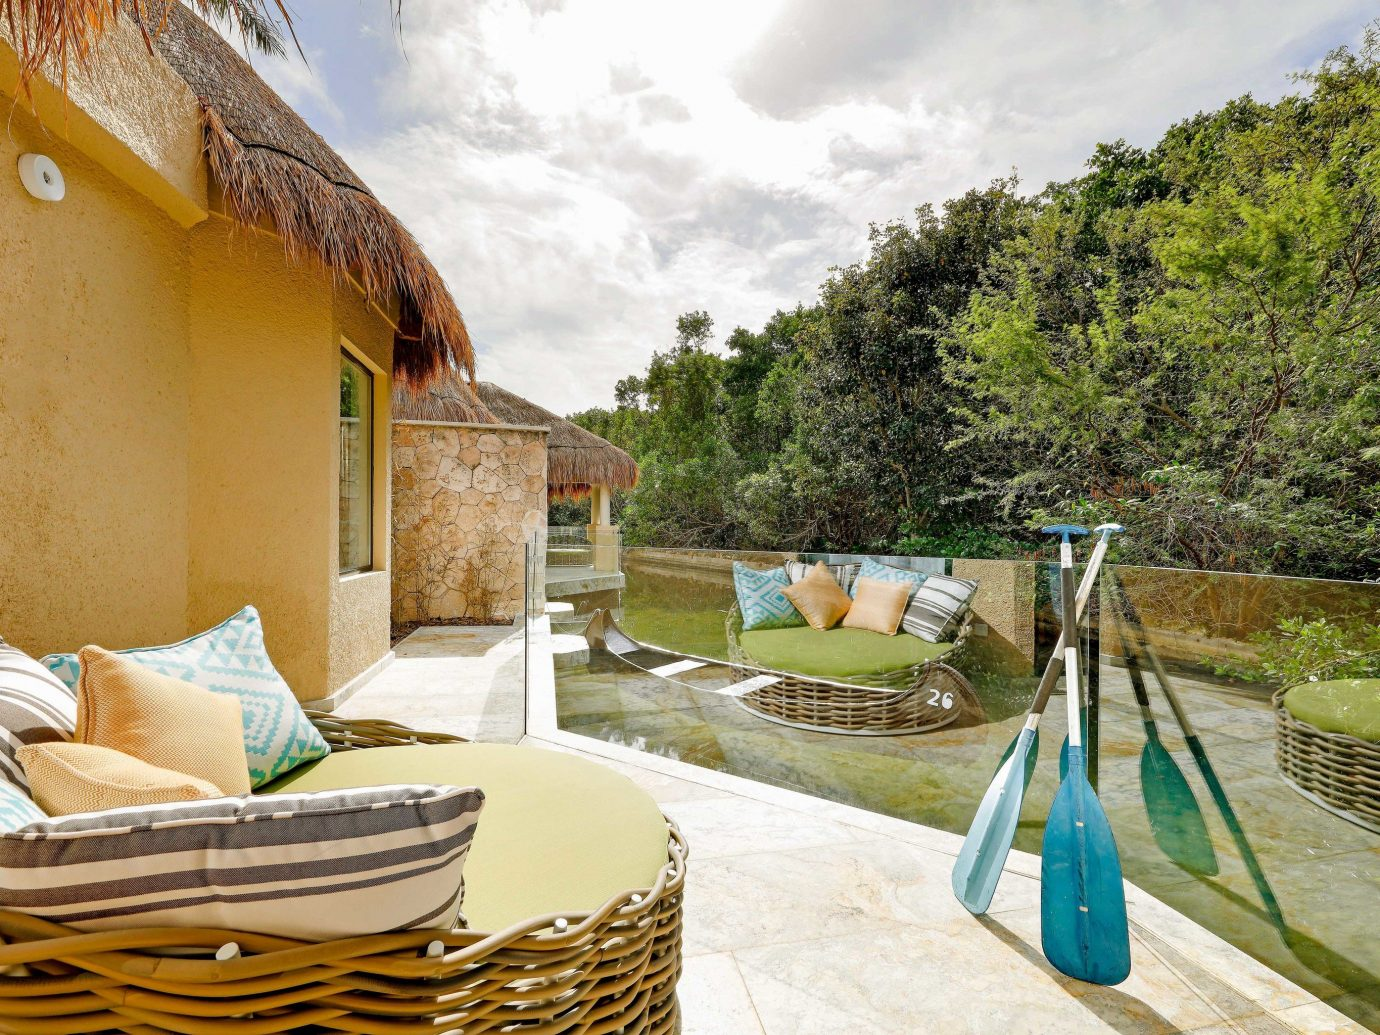 All-inclusive All-Inclusive Resorts Mexico Riviera Maya, Mexico property real estate estate Villa Resort home house outdoor structure hacienda vacation leisure